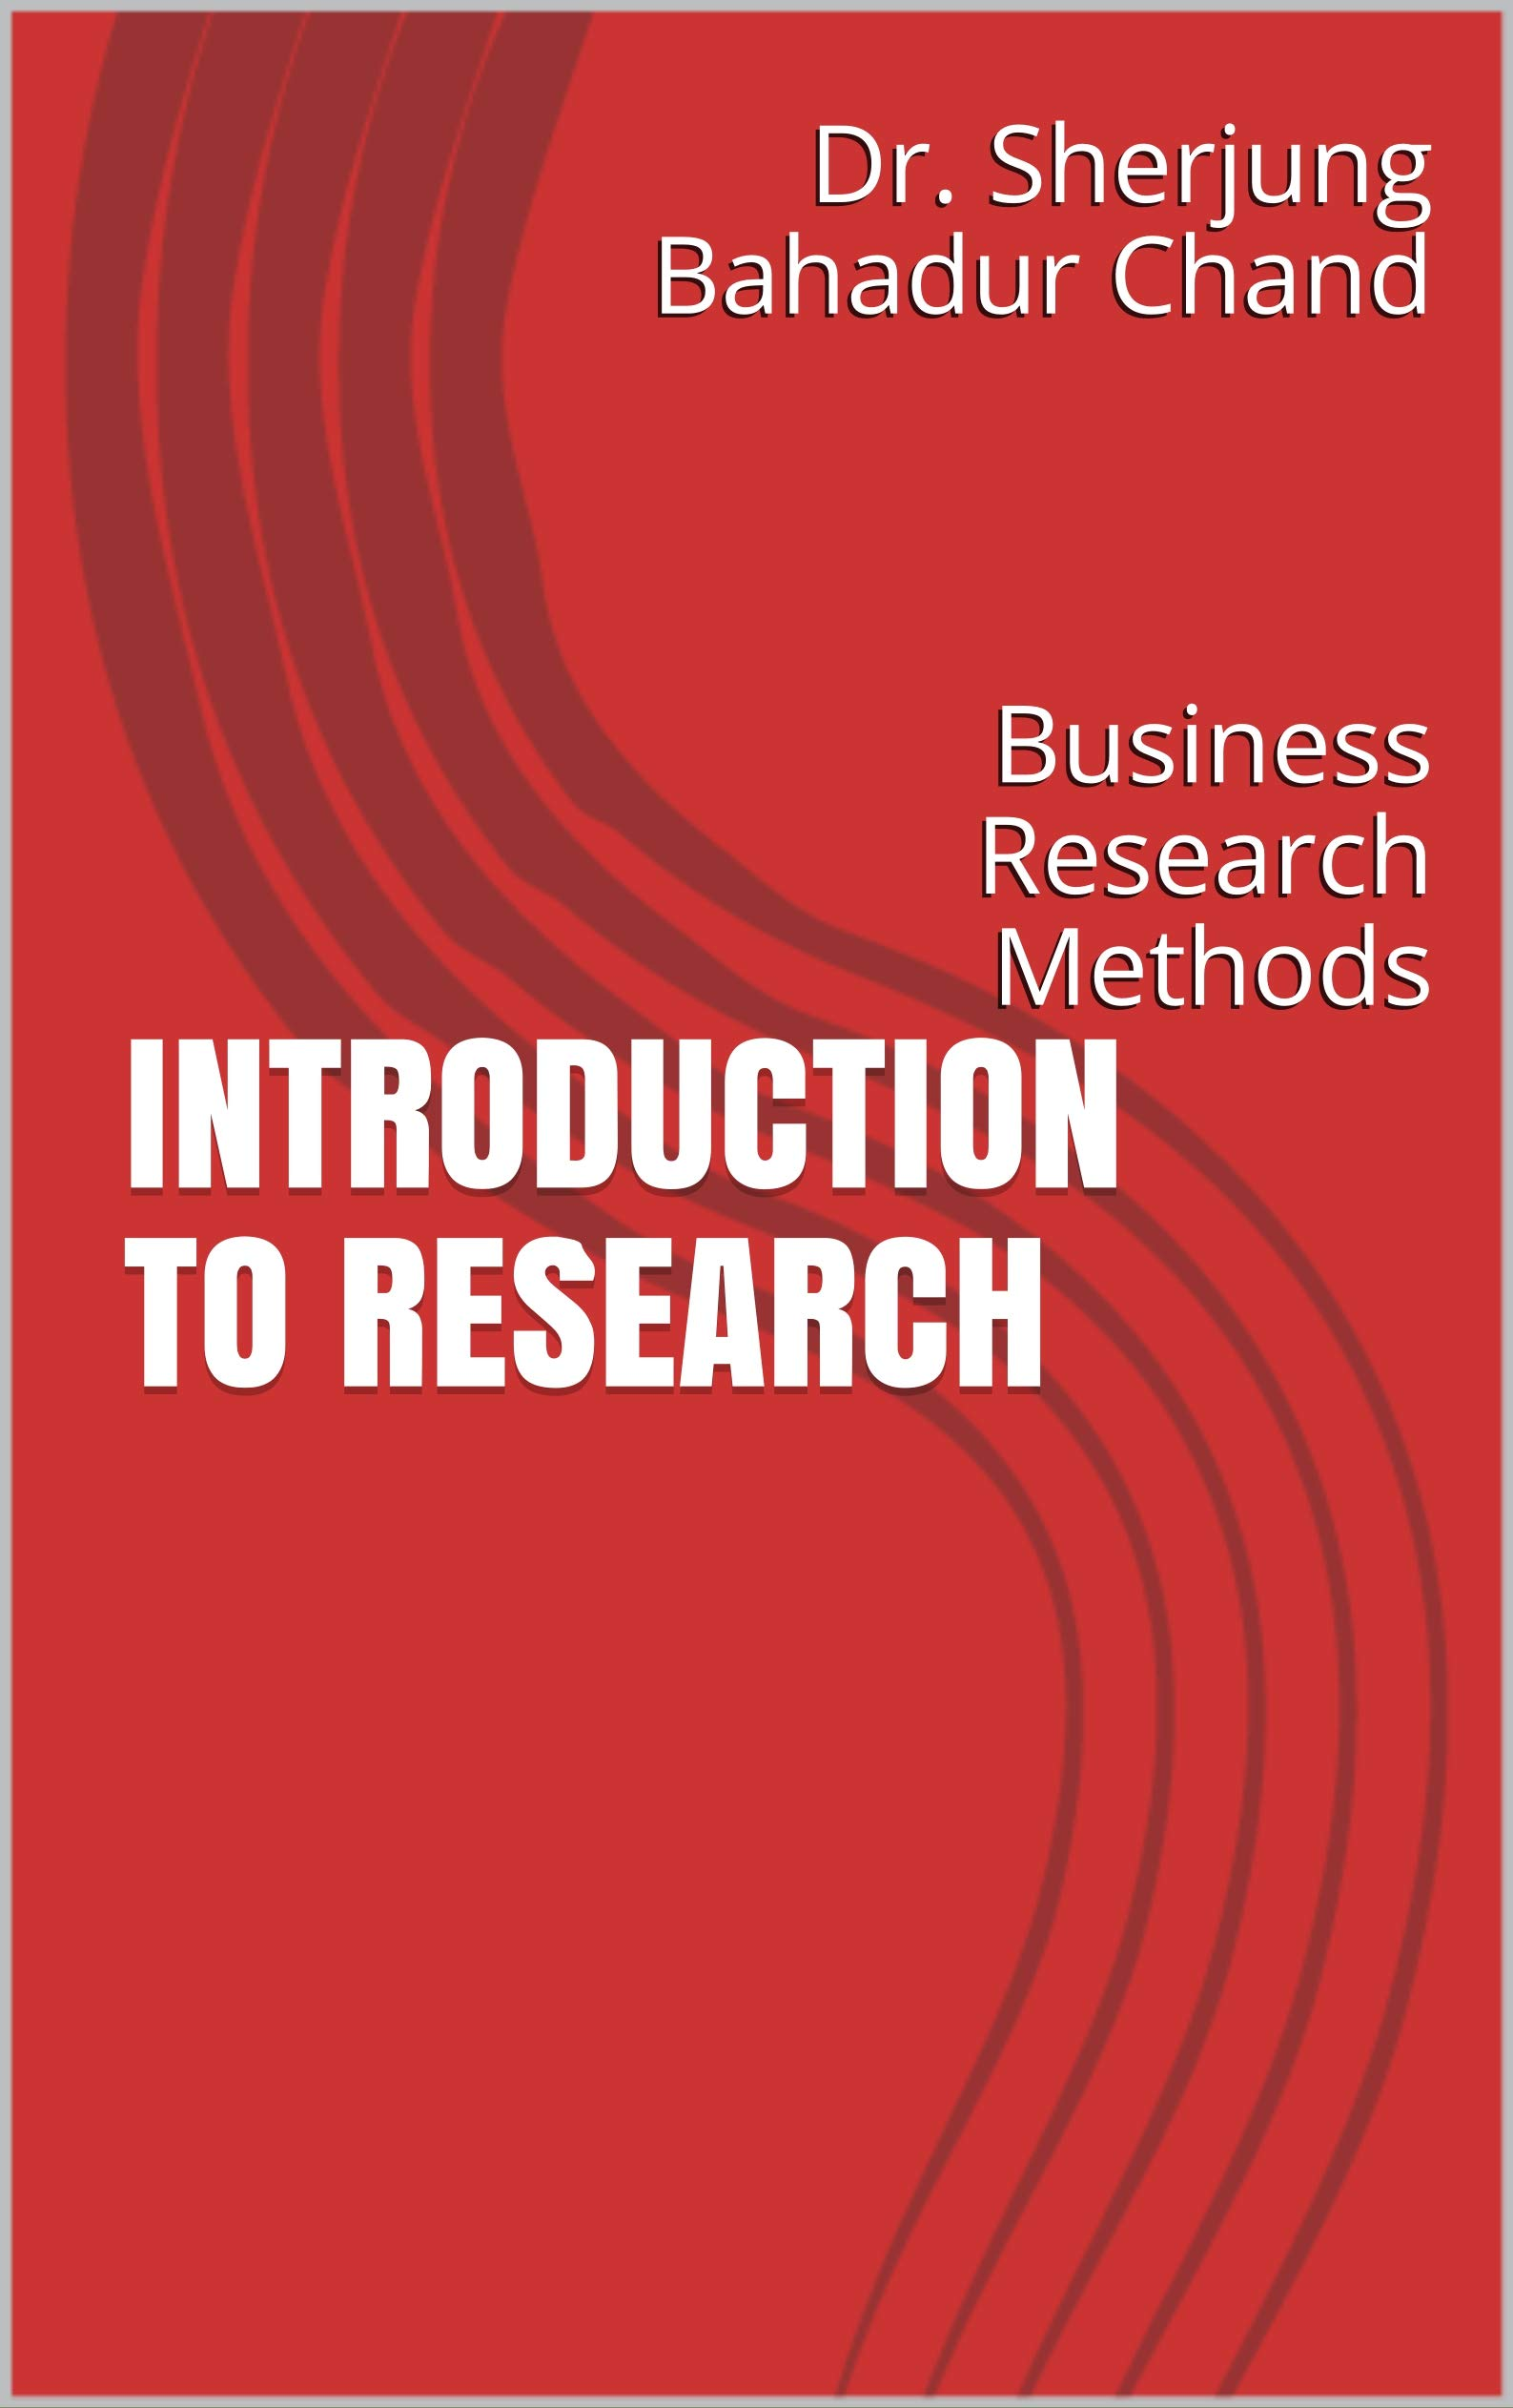 INTRODUCTION TO RESEARCH: Business Research Methods